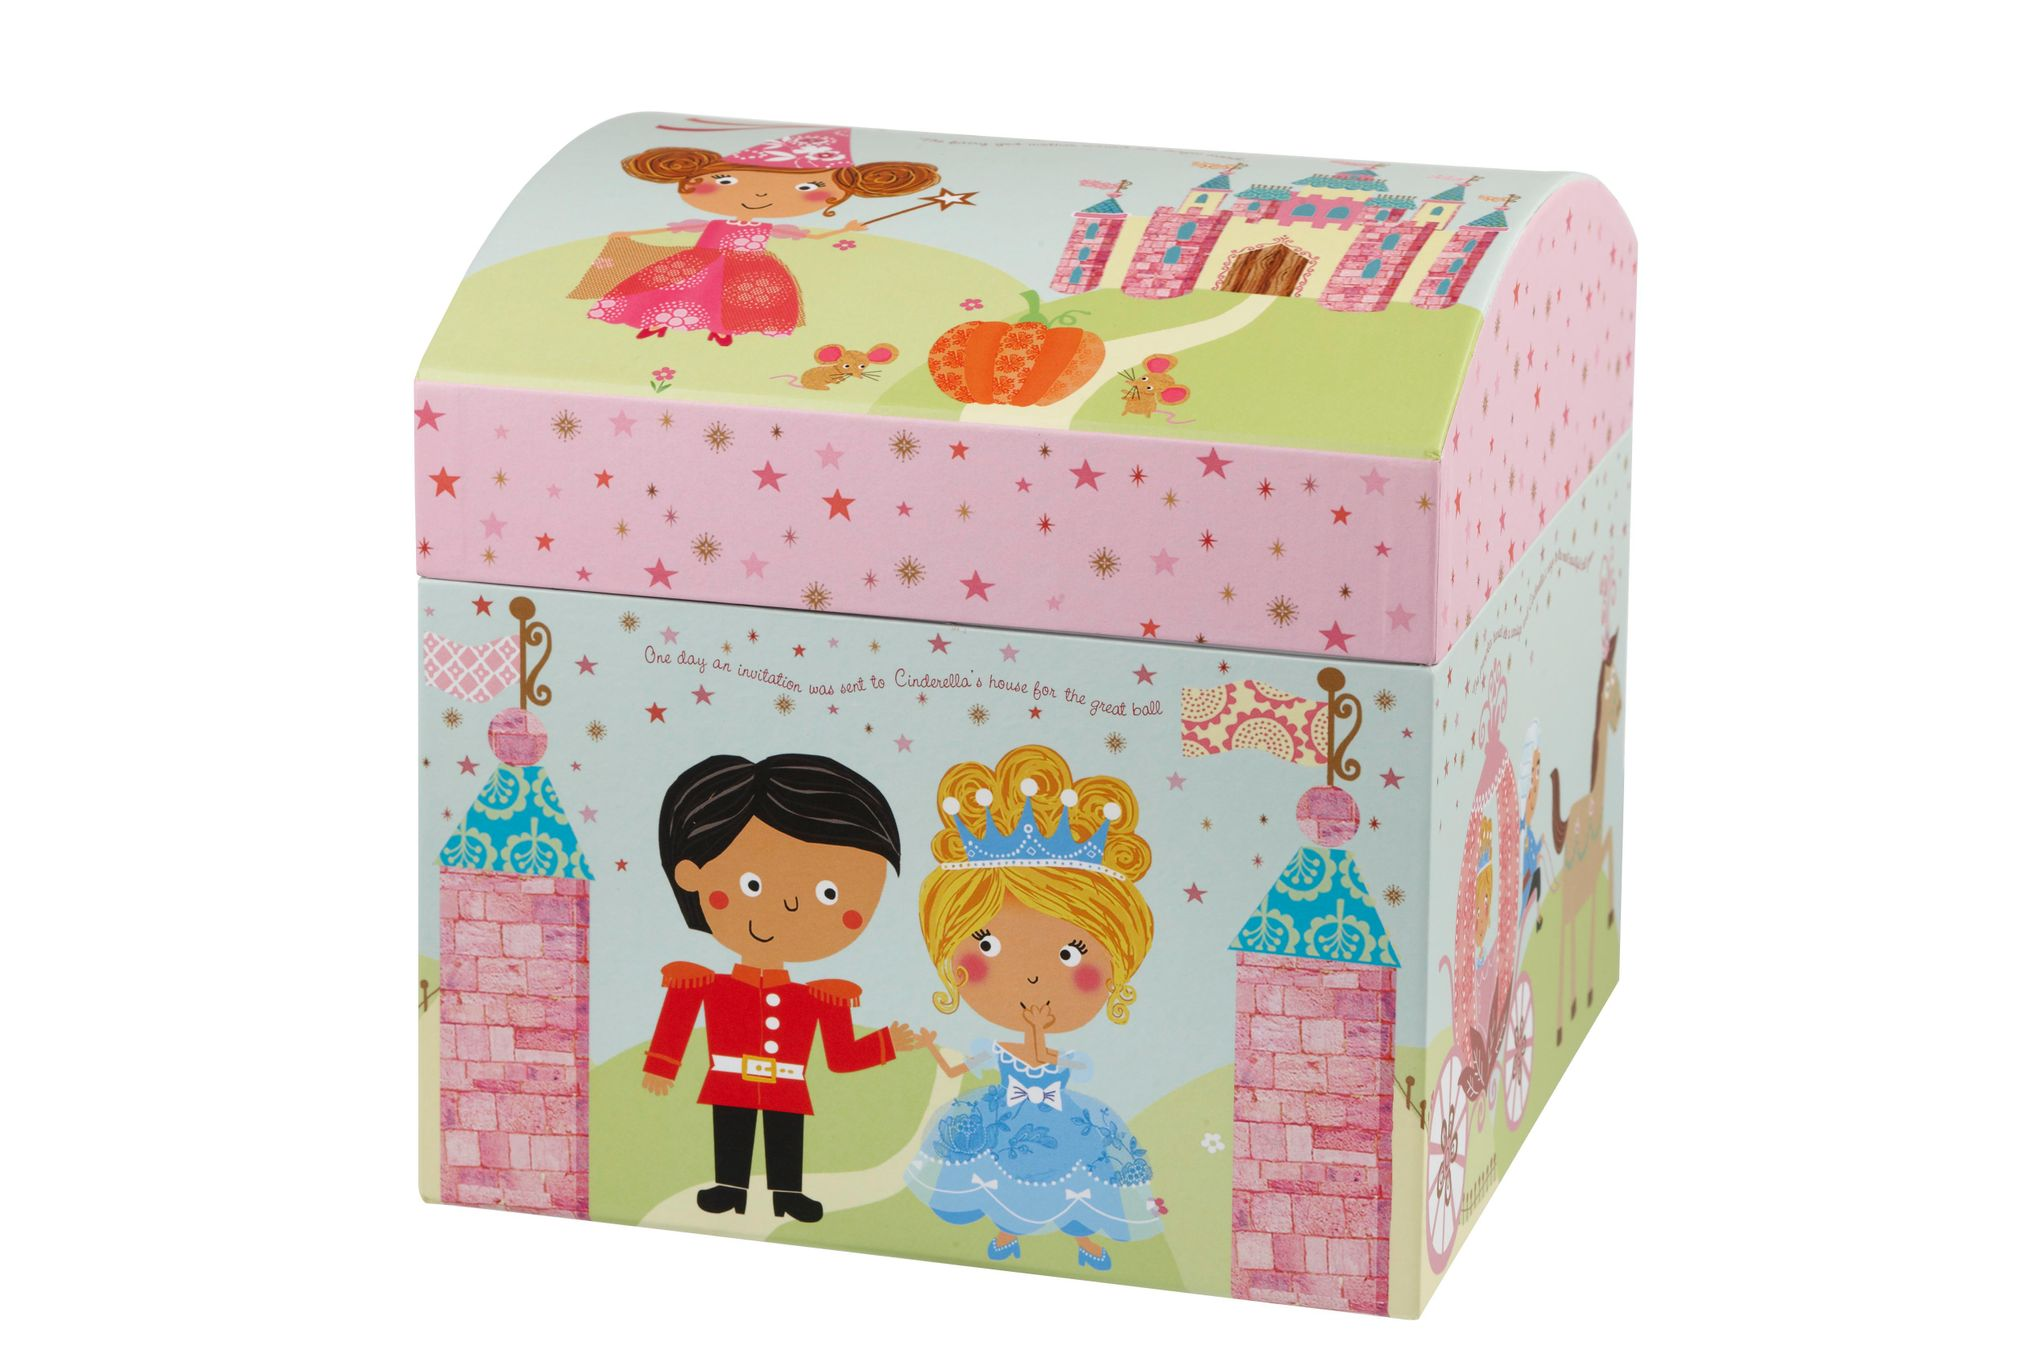 Churchill Little Rhymes Collection - Cinderella 4 Piece Breakfast Gift Box Set Set contains plate, bowl, egg cup and mug thumb 6